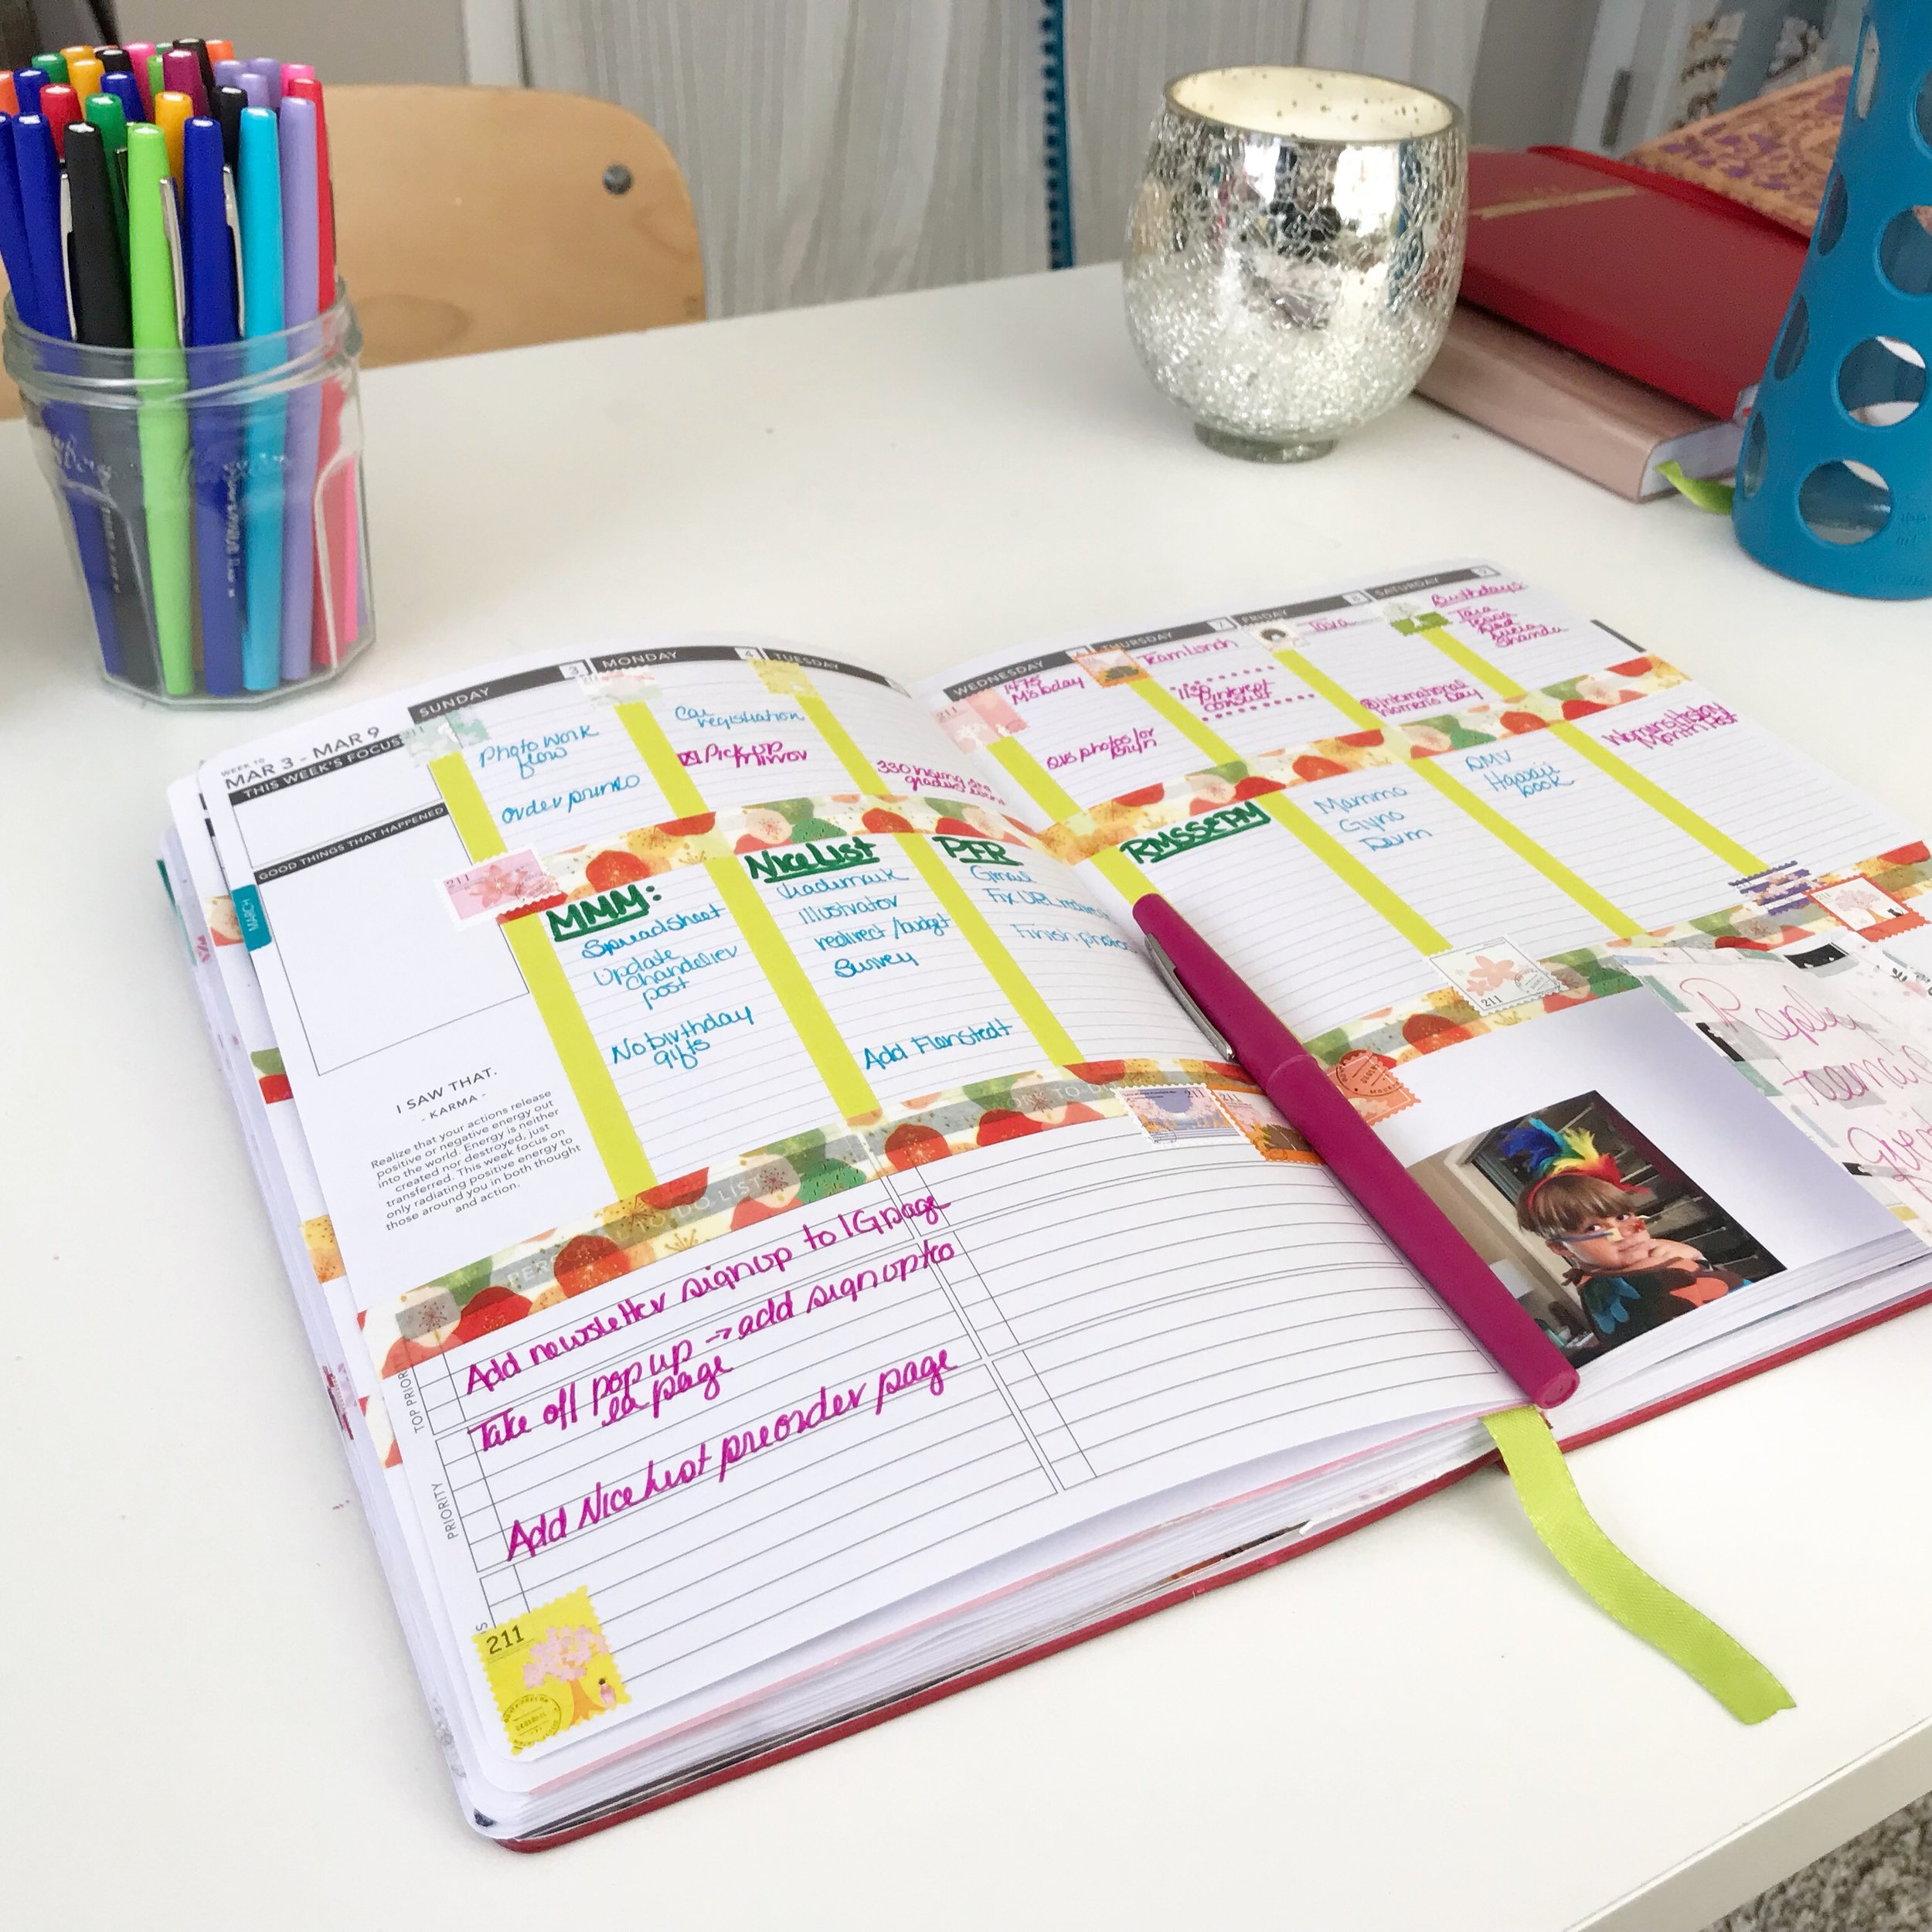 Washi tape makes weekly spreads more colorful. Simple tips and sticker layout ideas plus the best supplies for planners.